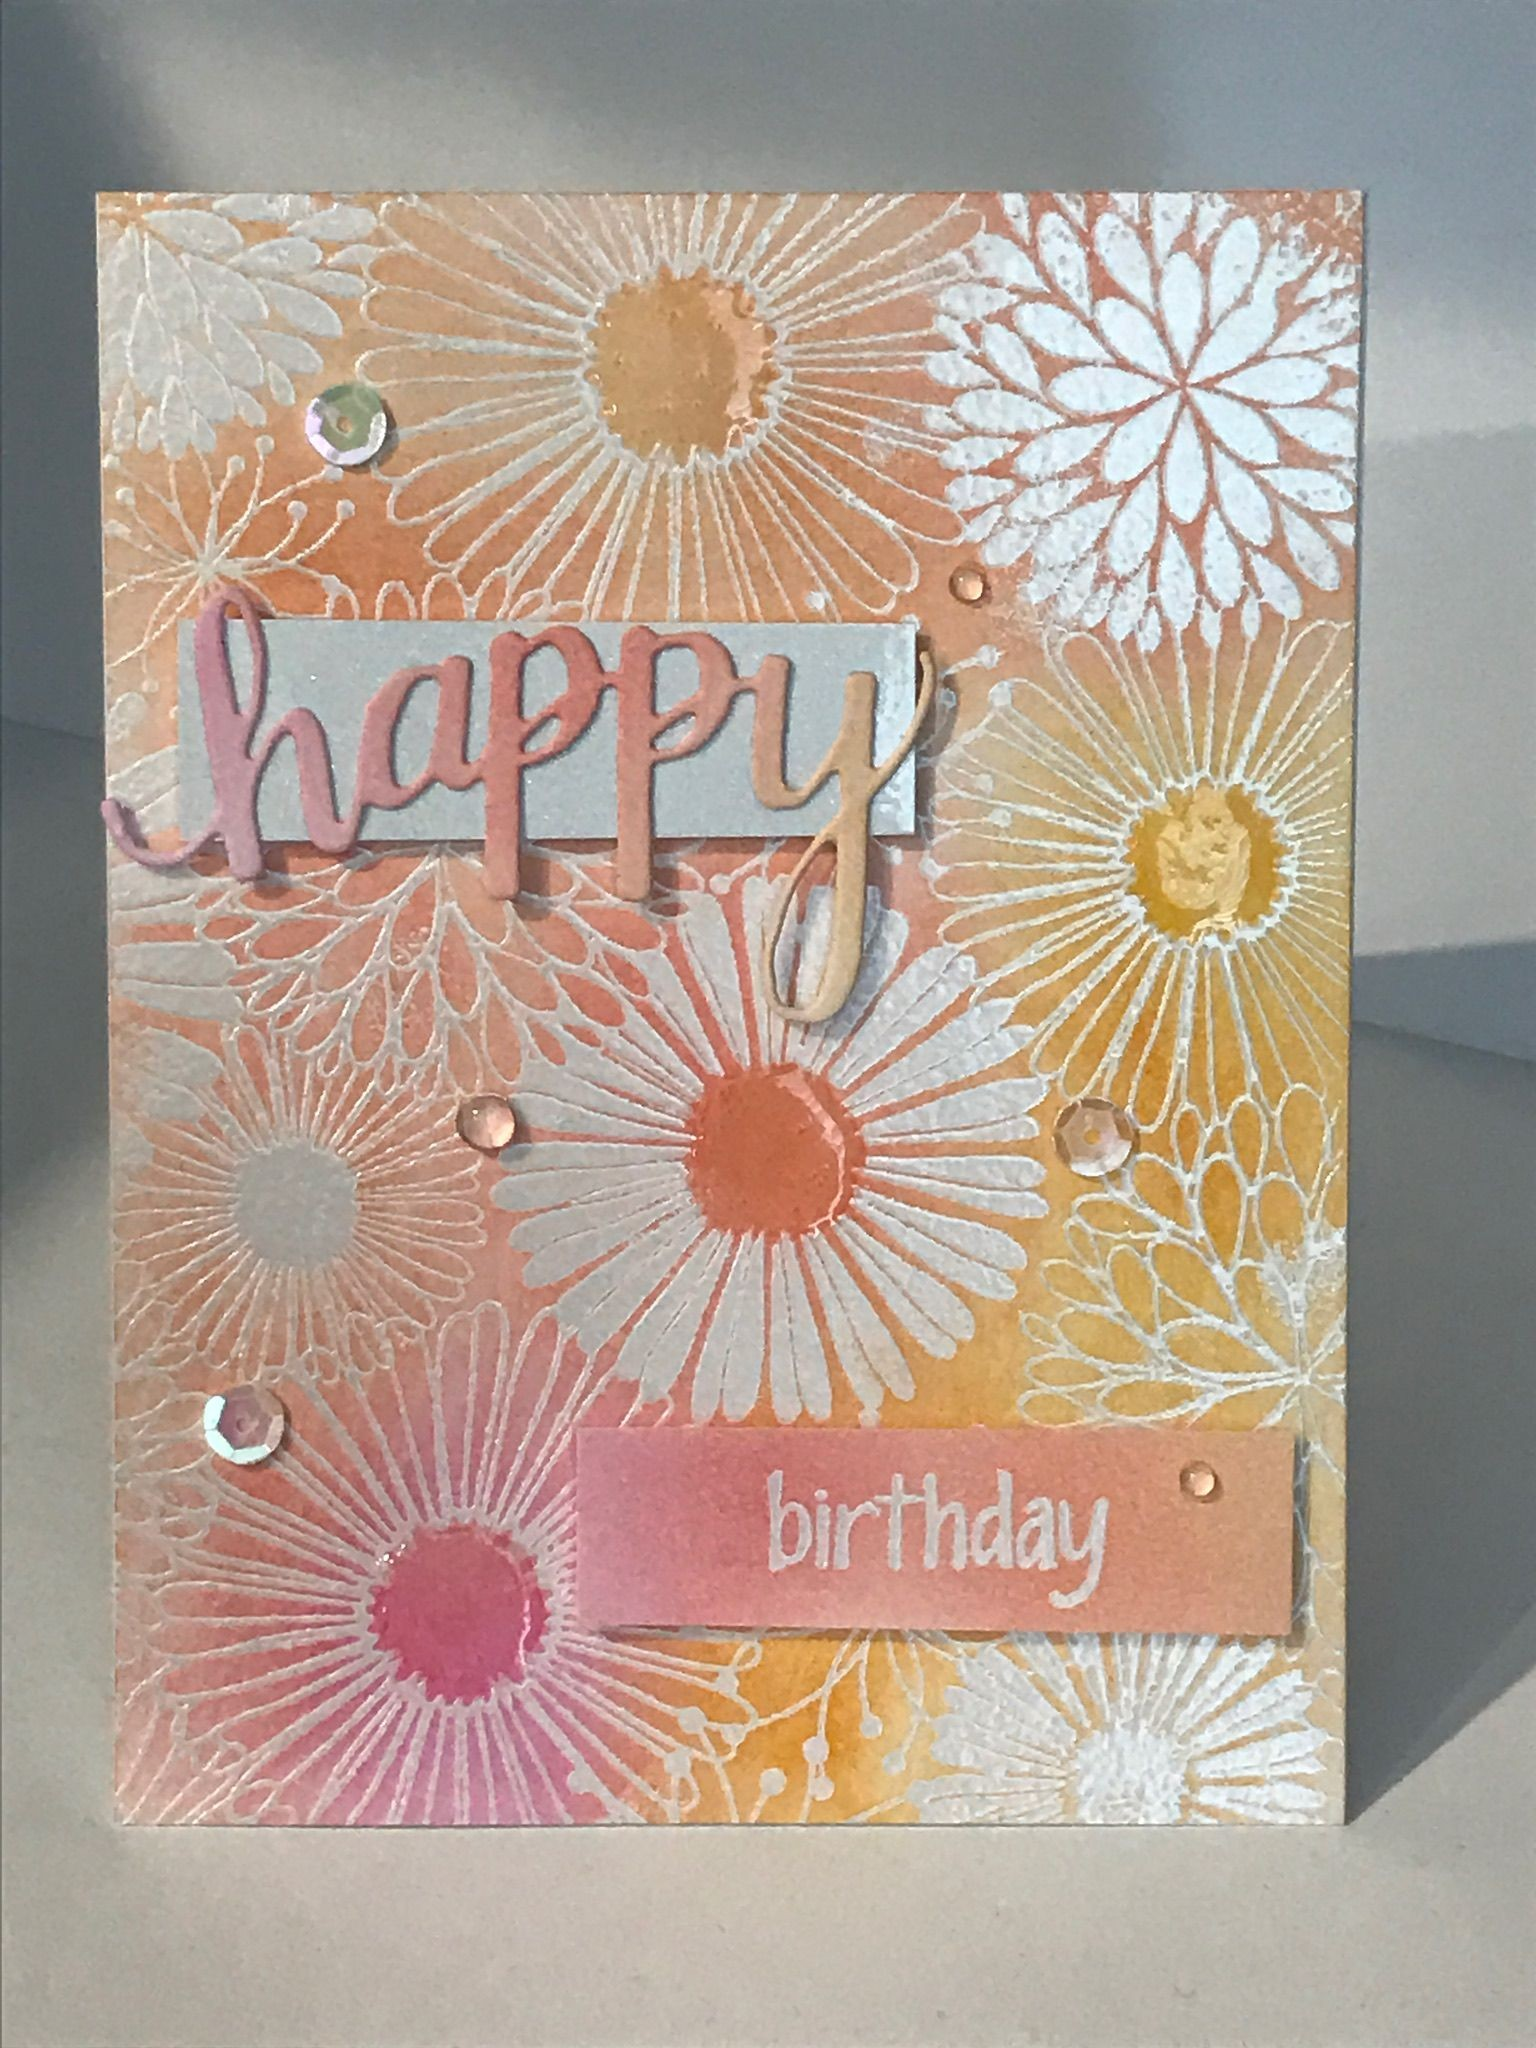 luna lovegood birthday card ; artistic-birthday-cards-inspirational-birthday-card-embossing-ink-blending-with-emboss-resist-cuts-of-artistic-birthday-cards